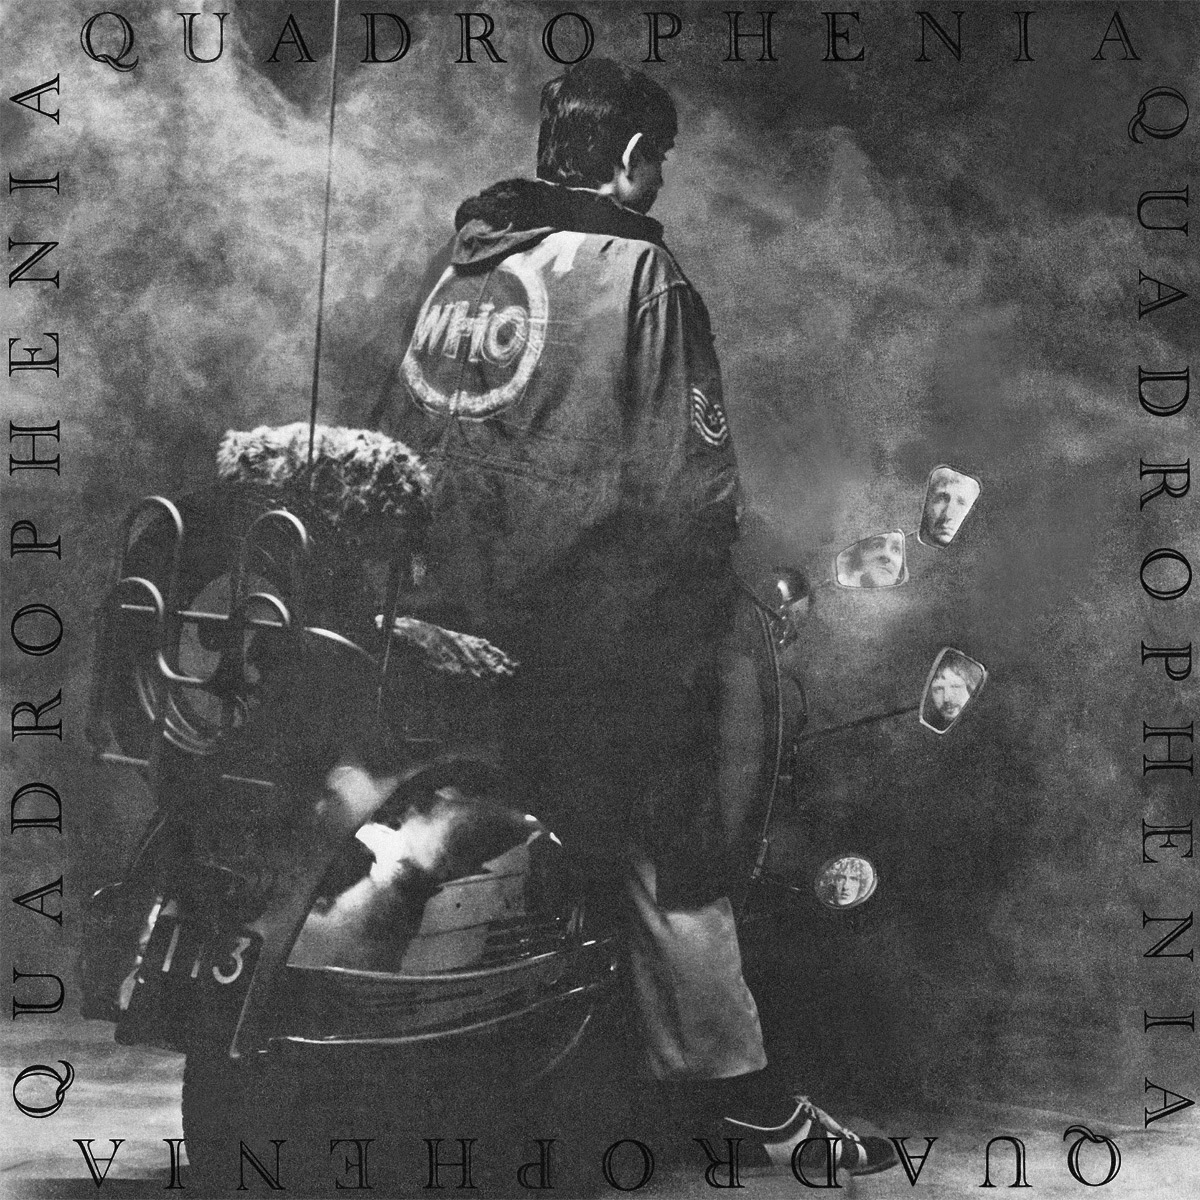 THE WHO Quadrophenia 1973